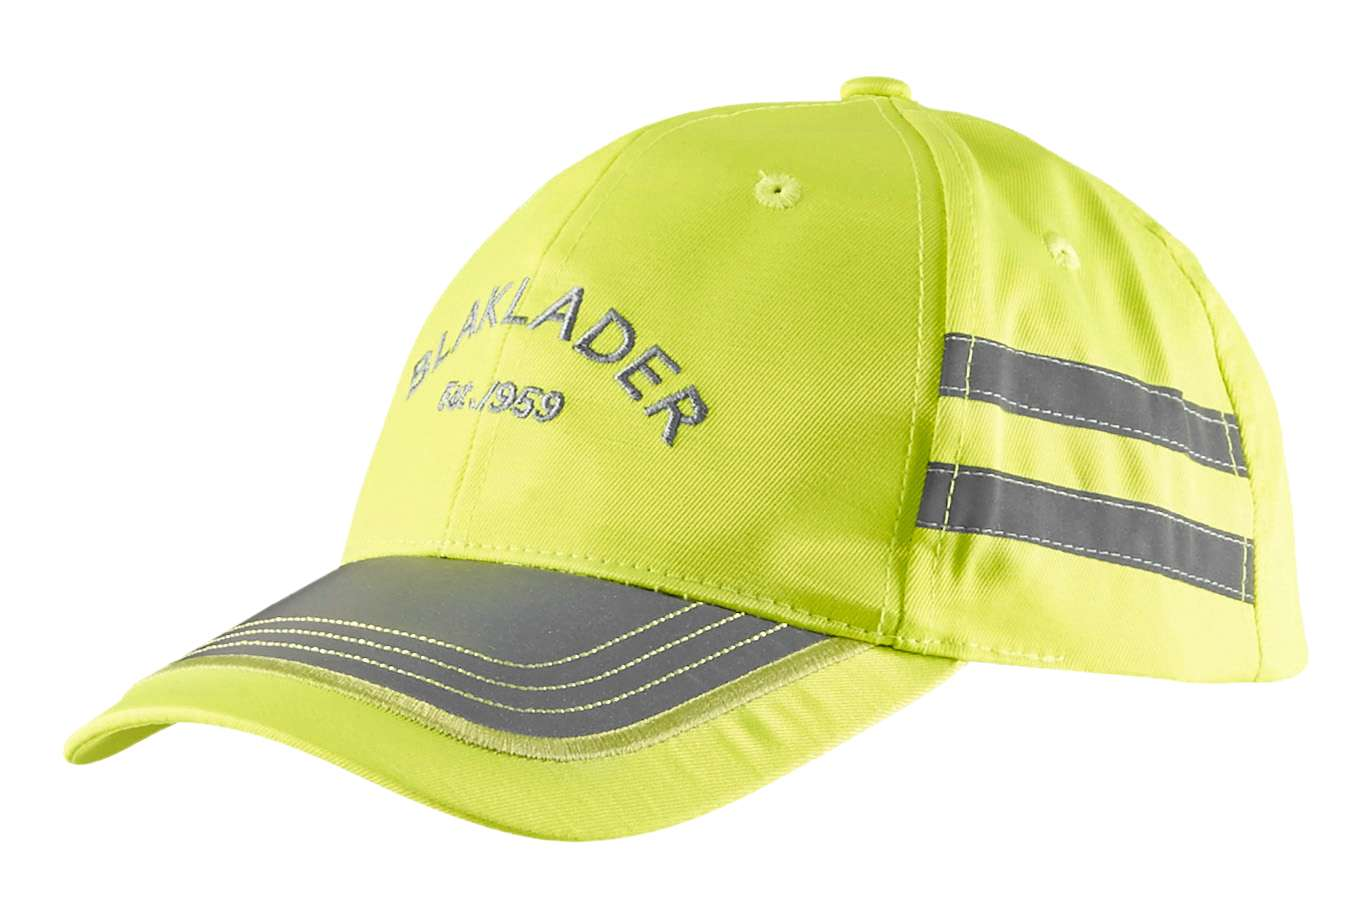 Blaklader Caps 86101002 High Vis geel(3300)